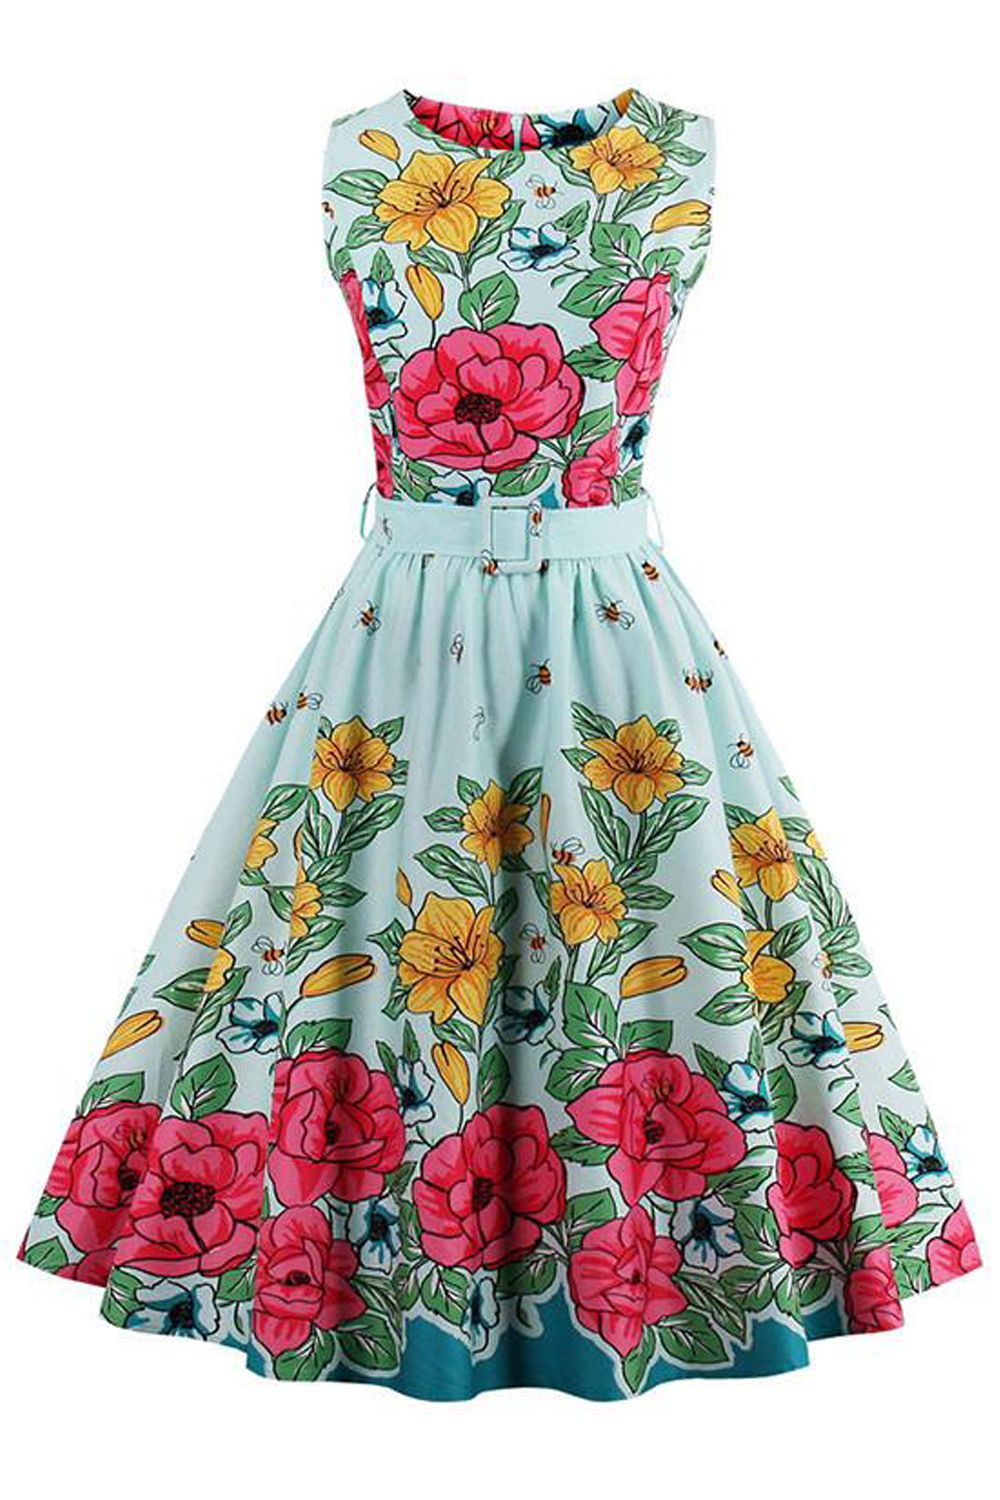 Atomic 1950\'s Floral Rockabilly Cocktail Dress | Rockabilly, 1950s ...